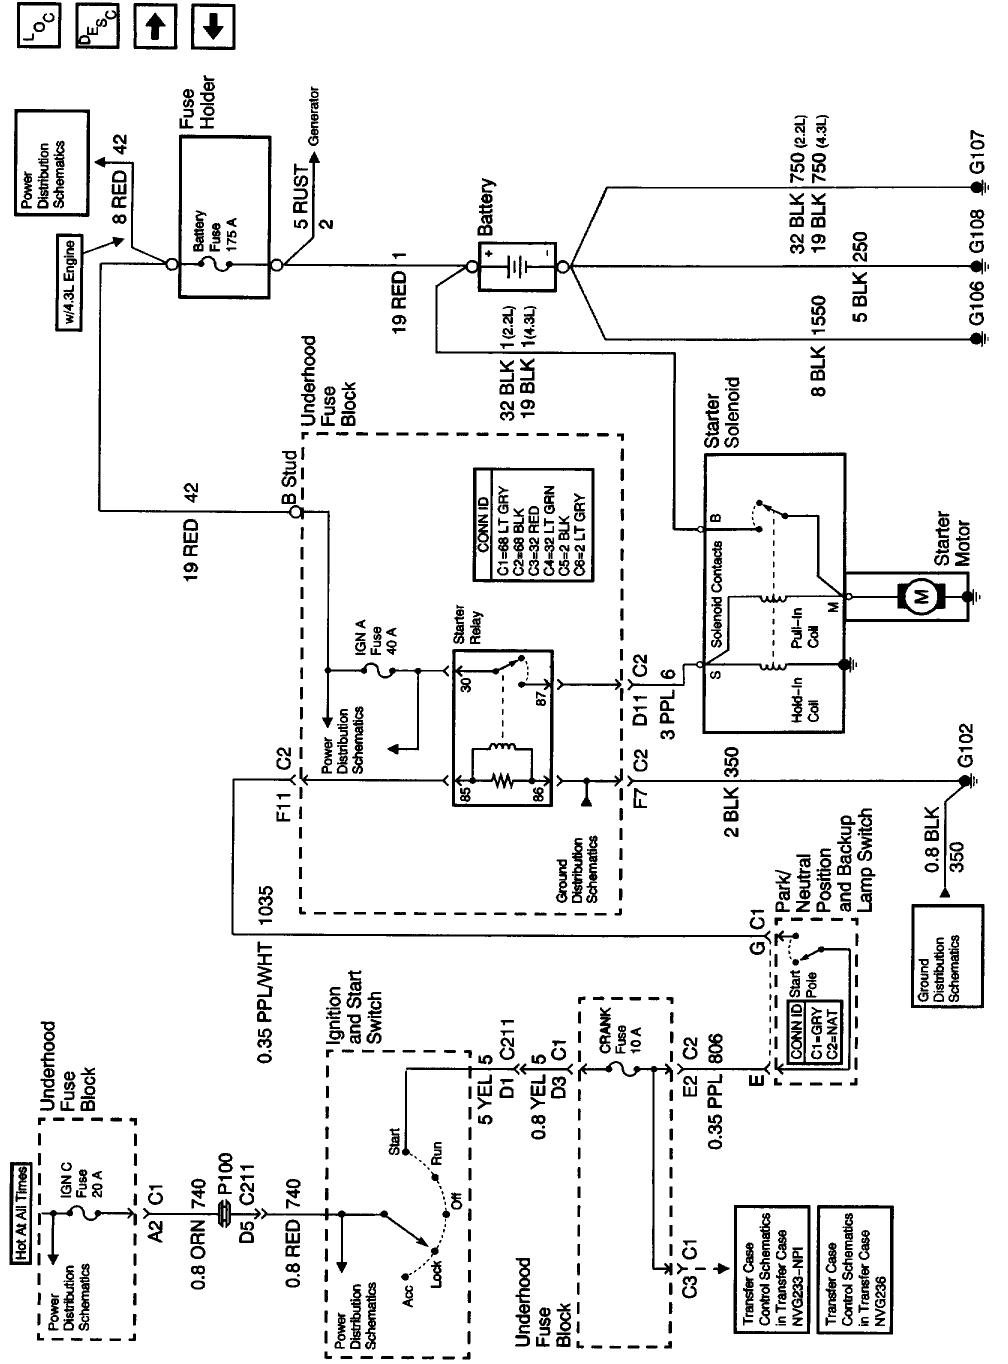 34 2000 Chevy S10 22 Engine Diagram